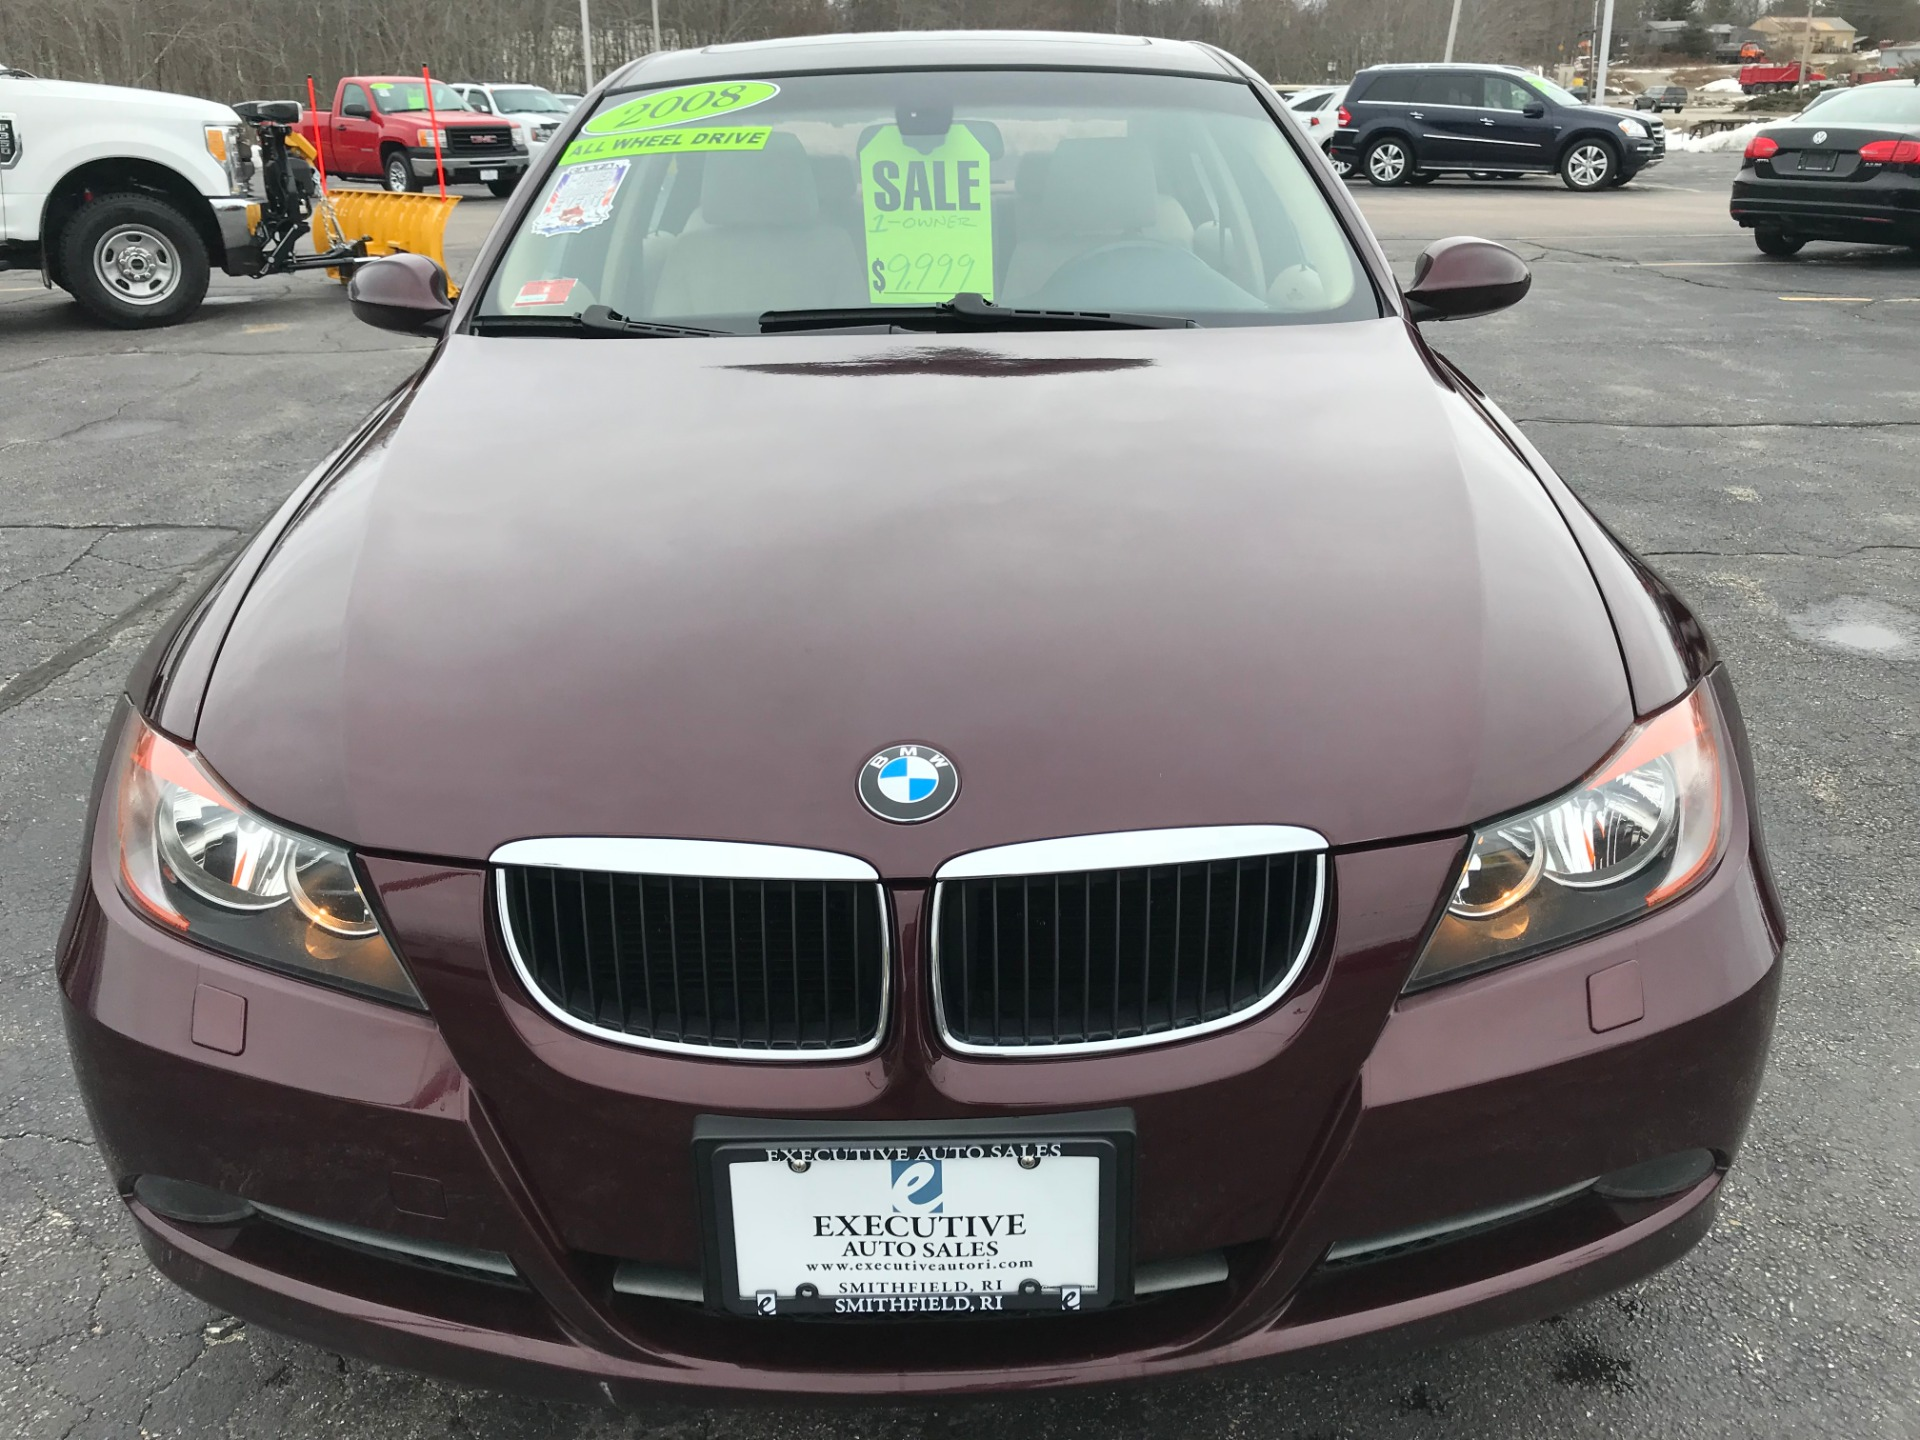 2008 Bmw 328 Xi Xi Stock 1624 For Sale Near Smithfield